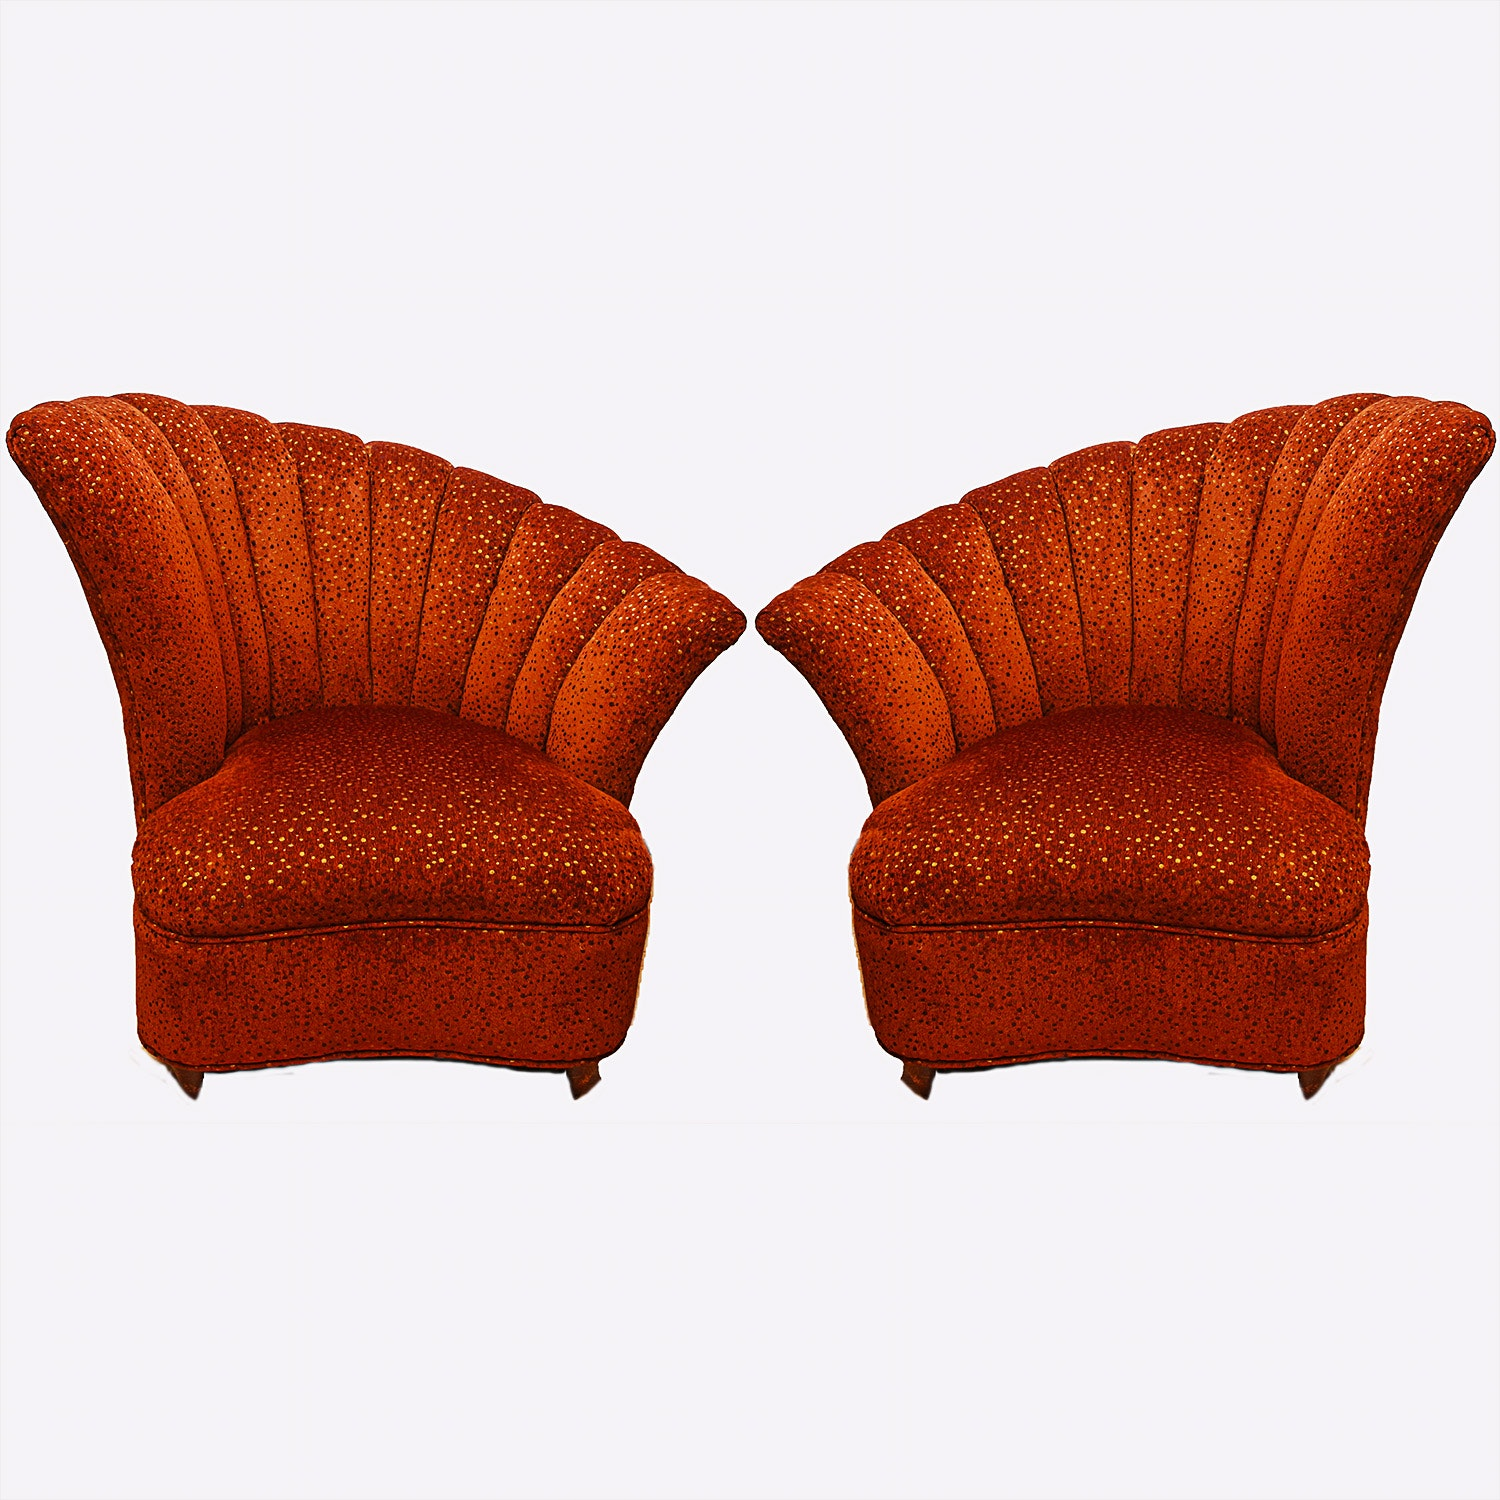 Pair of Contemporary Accent Chairs